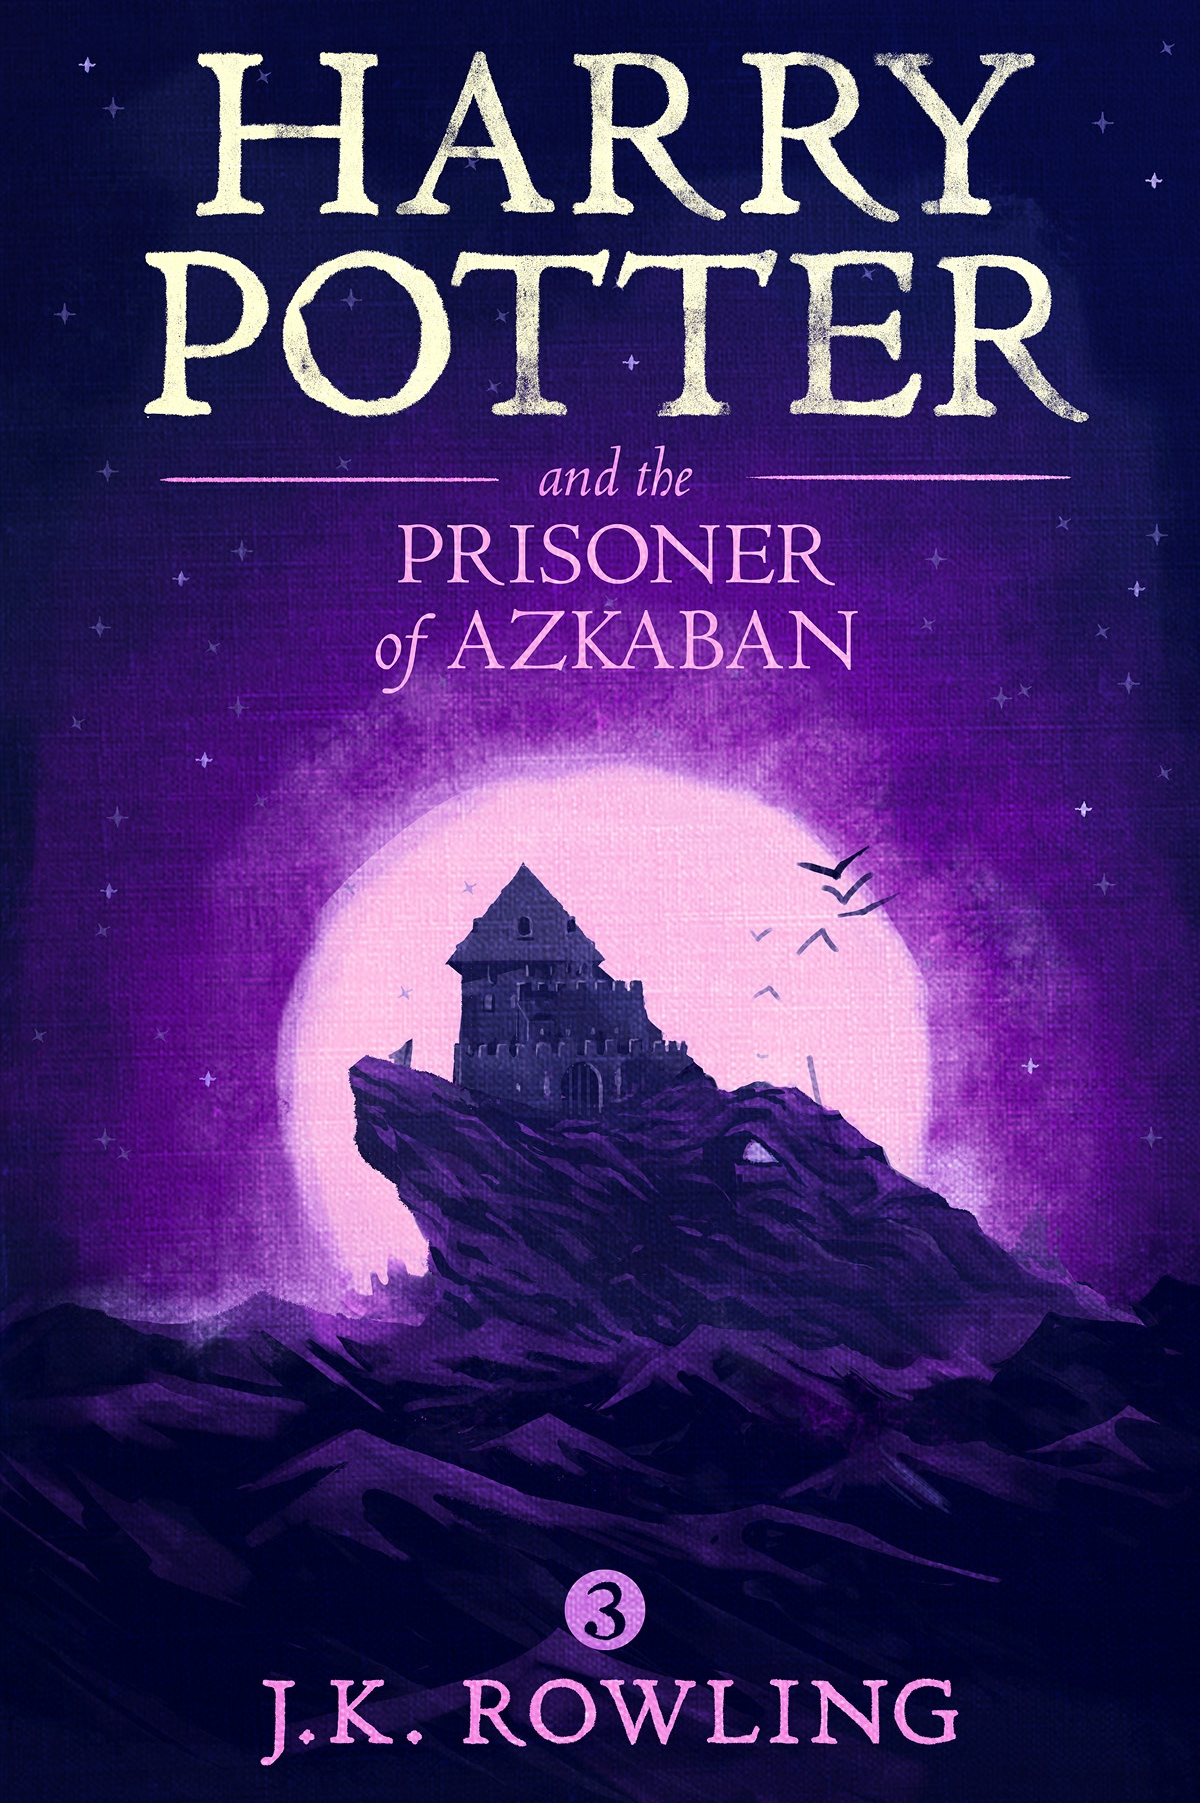 Harry Potter and the Prisoner of Azkaban. Джоан Кэтлин Роулинг